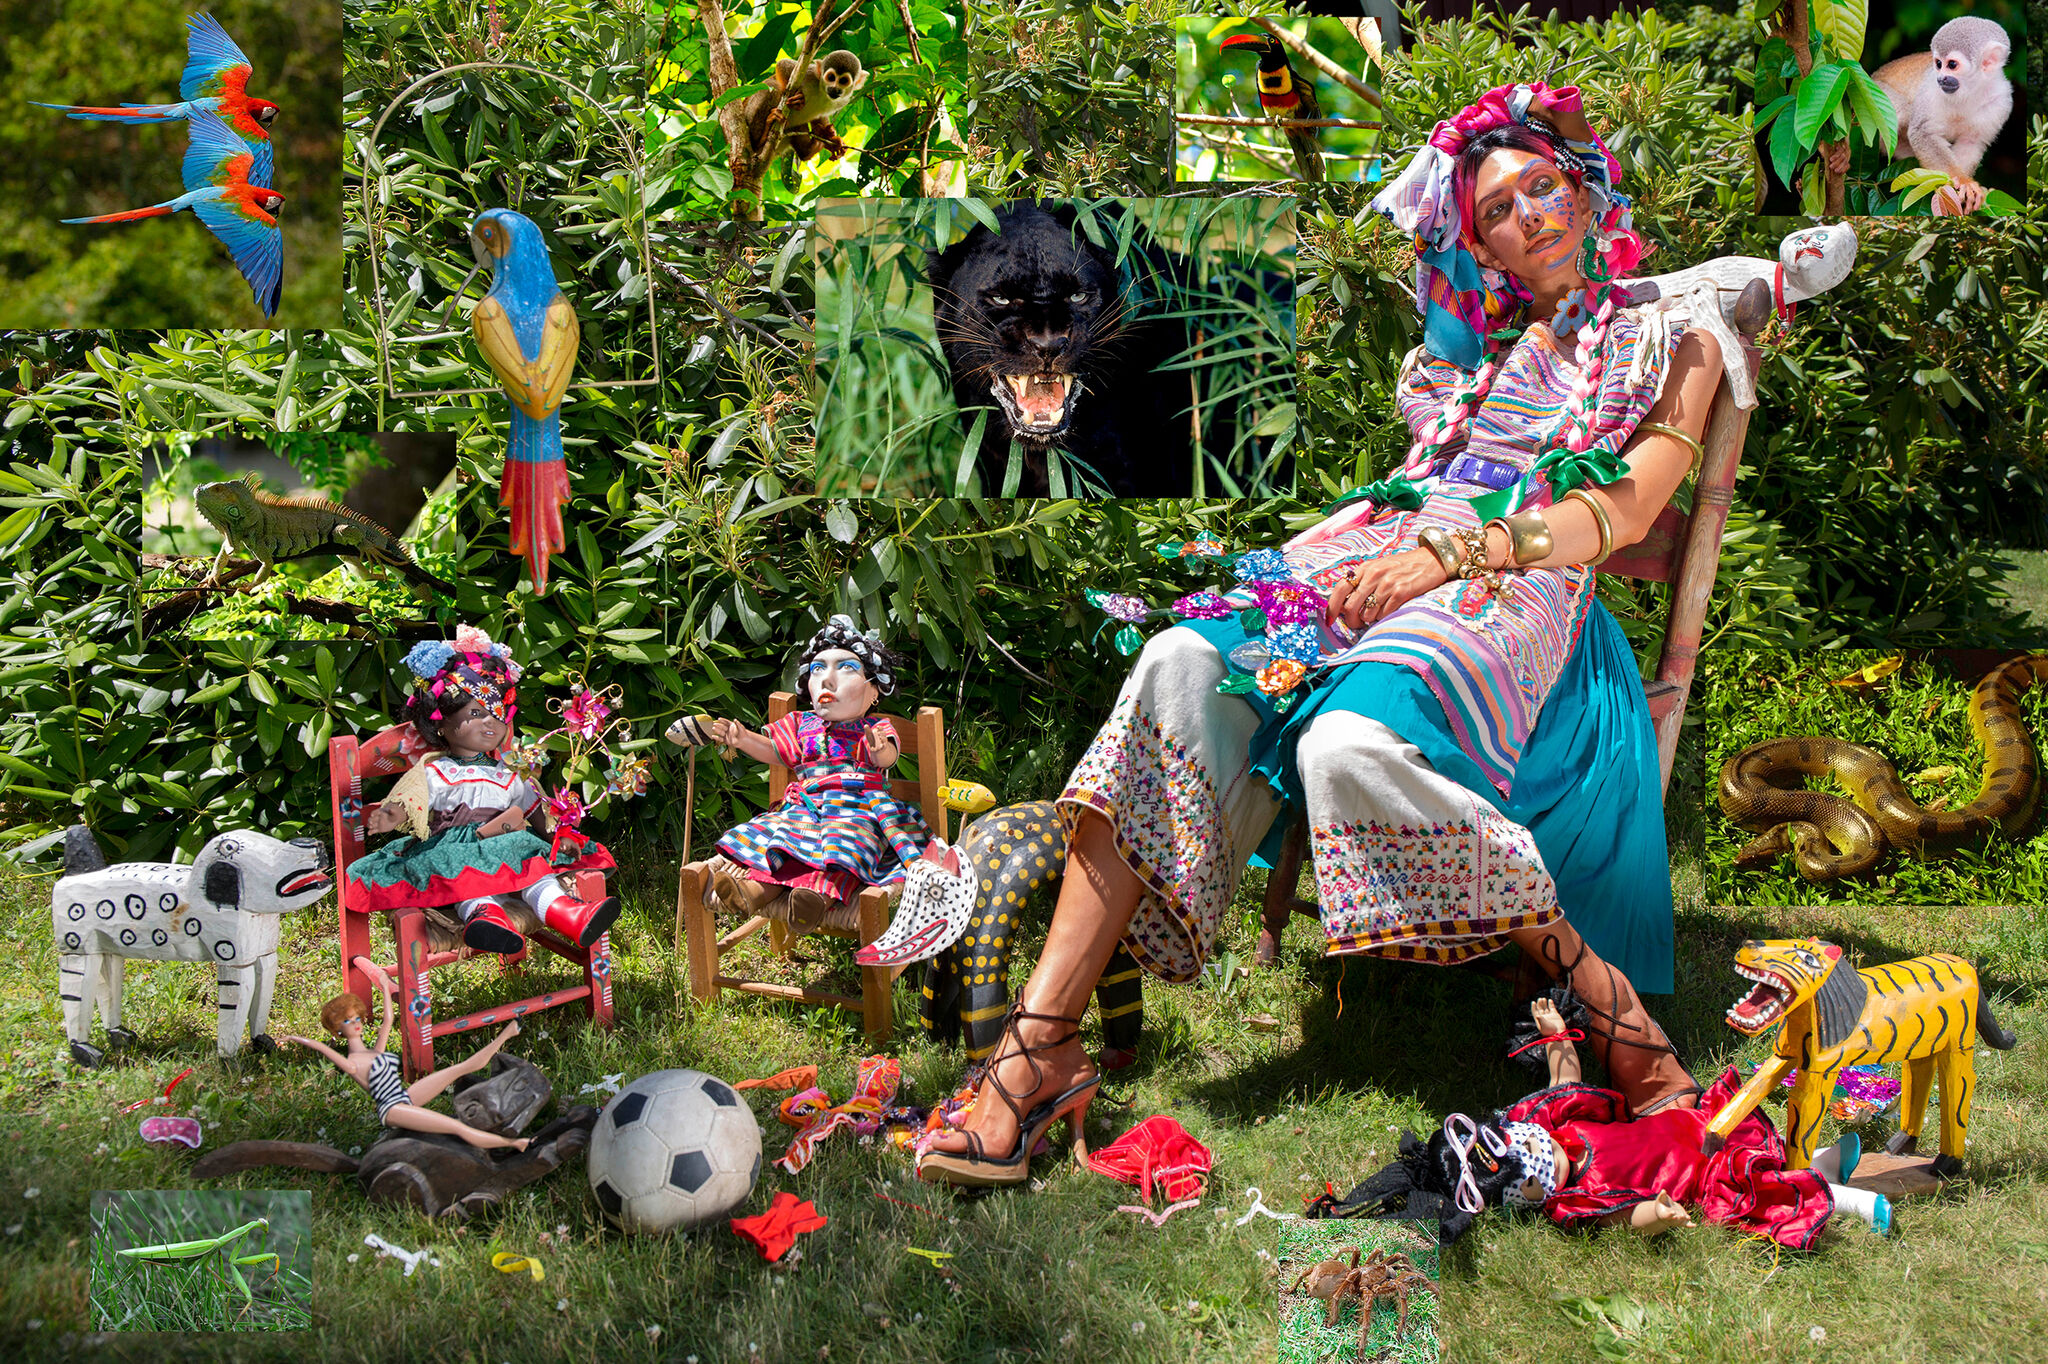 A woman in a brightly colored outfit lounges in a chair on grass, with wild animals, dolls, and a soccer ball on the ground and peeking out from the foliage.